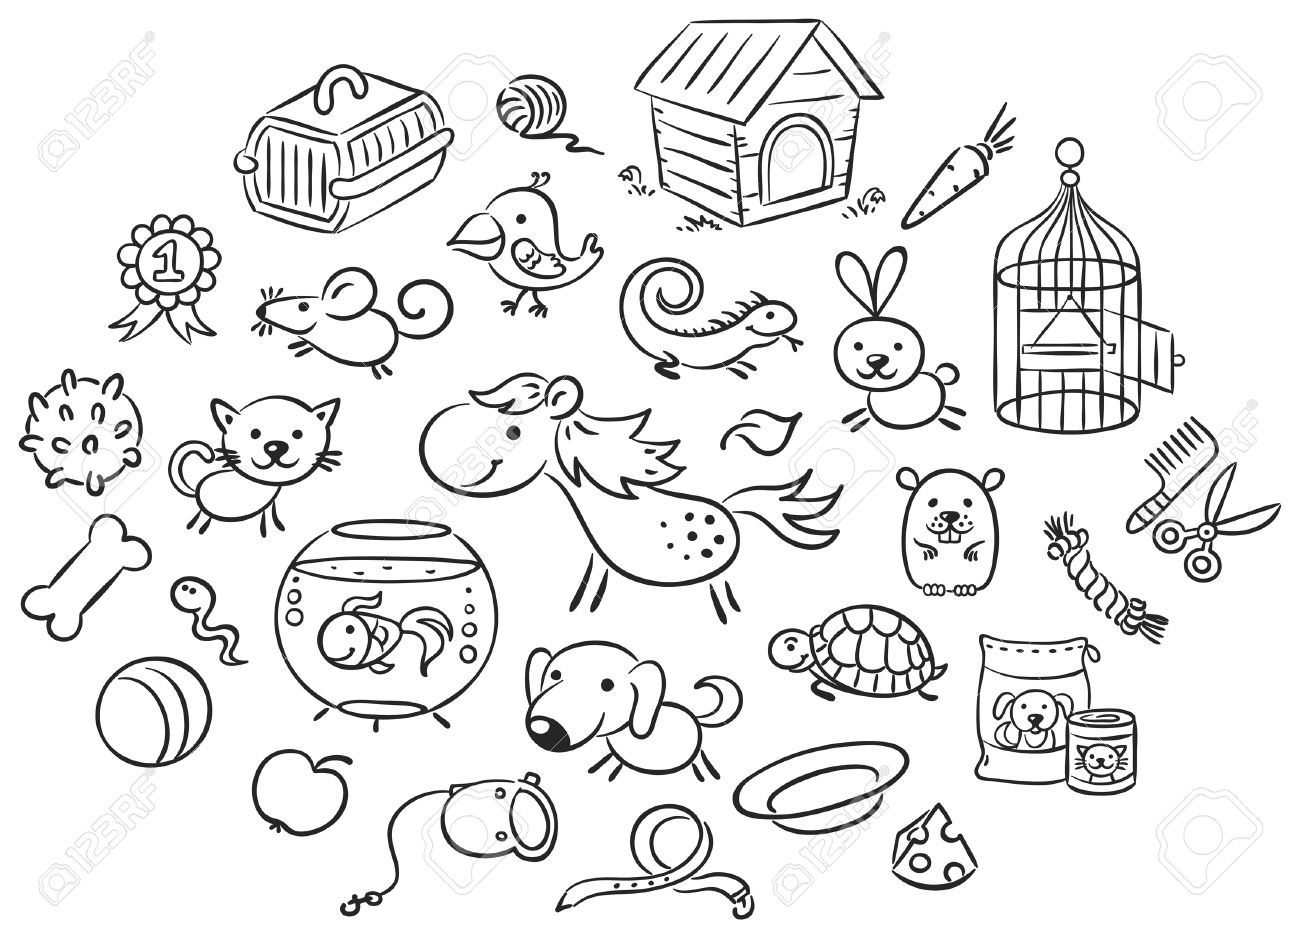 Set Of Black And White Cartoon Pet Animals With Accessories